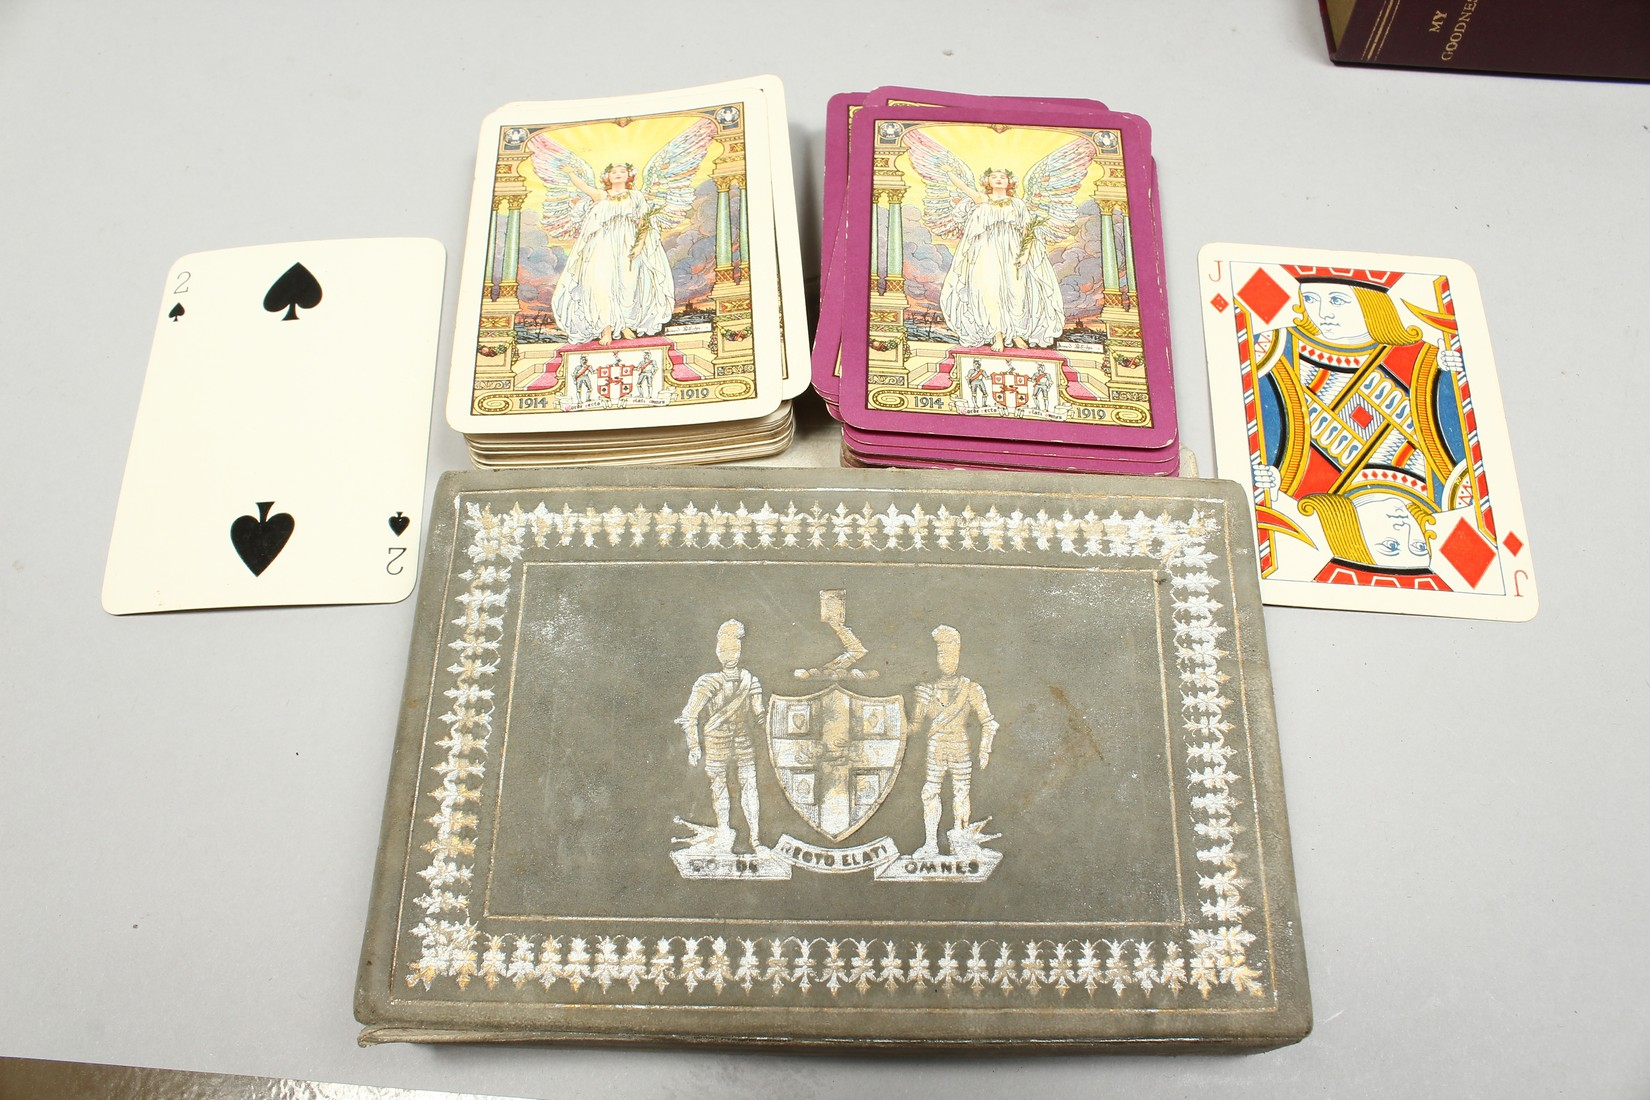 A COLLECTION OF VARIOUS PLAYING CARDS. - Image 4 of 16